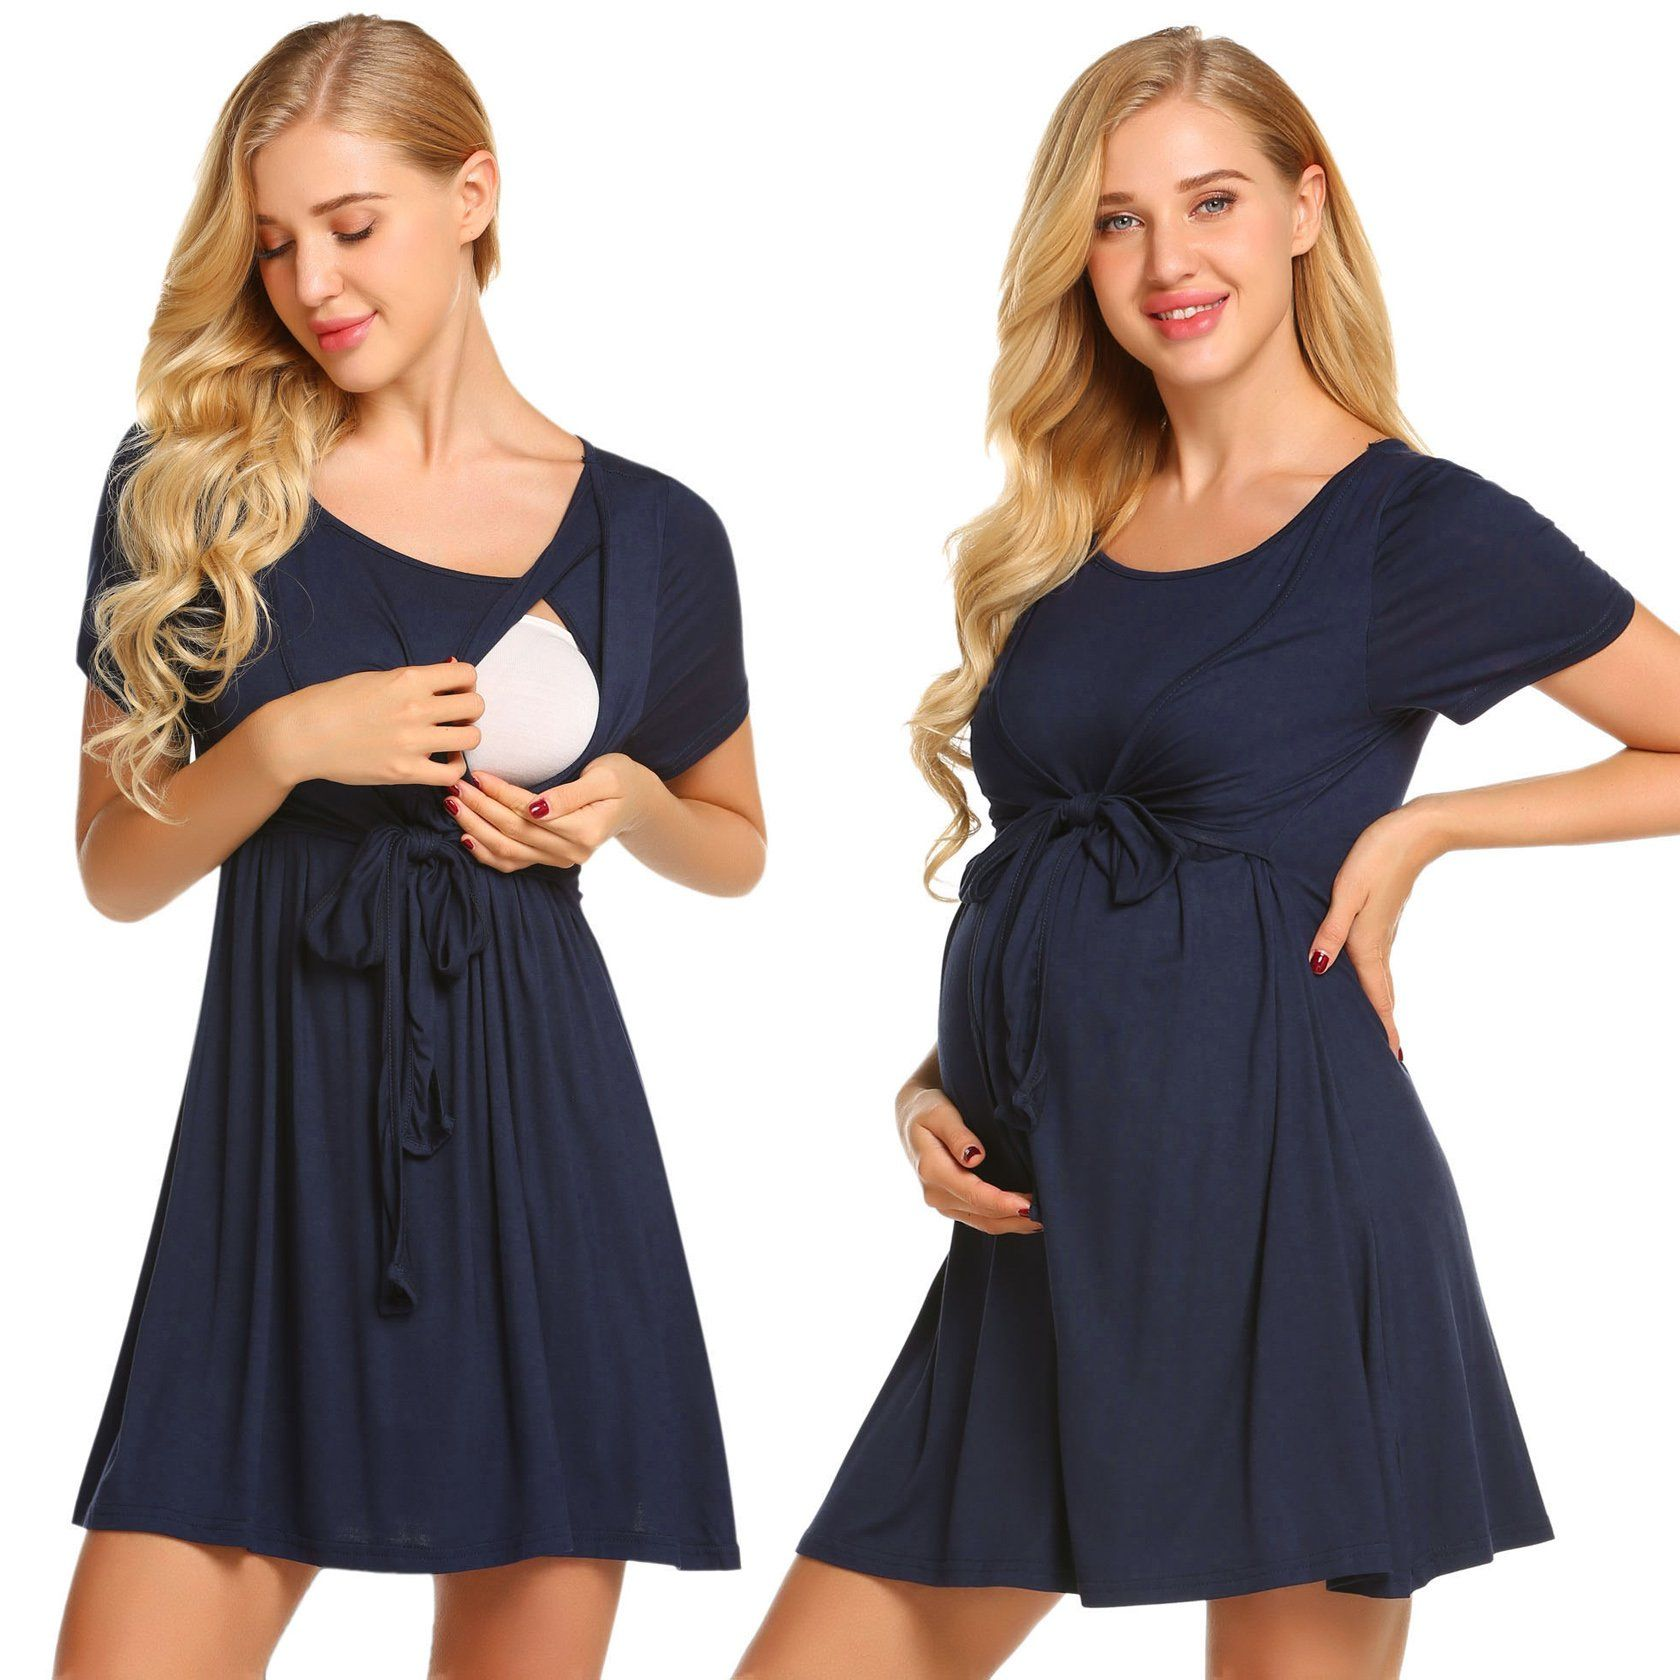 df4a729c8a71 Maternity Fashion - pehie Nursing Nightgown Womens Short Sleeve Maternity  Dress for Breastfeeding SXXL     Be sure to check out this outstanding  product.